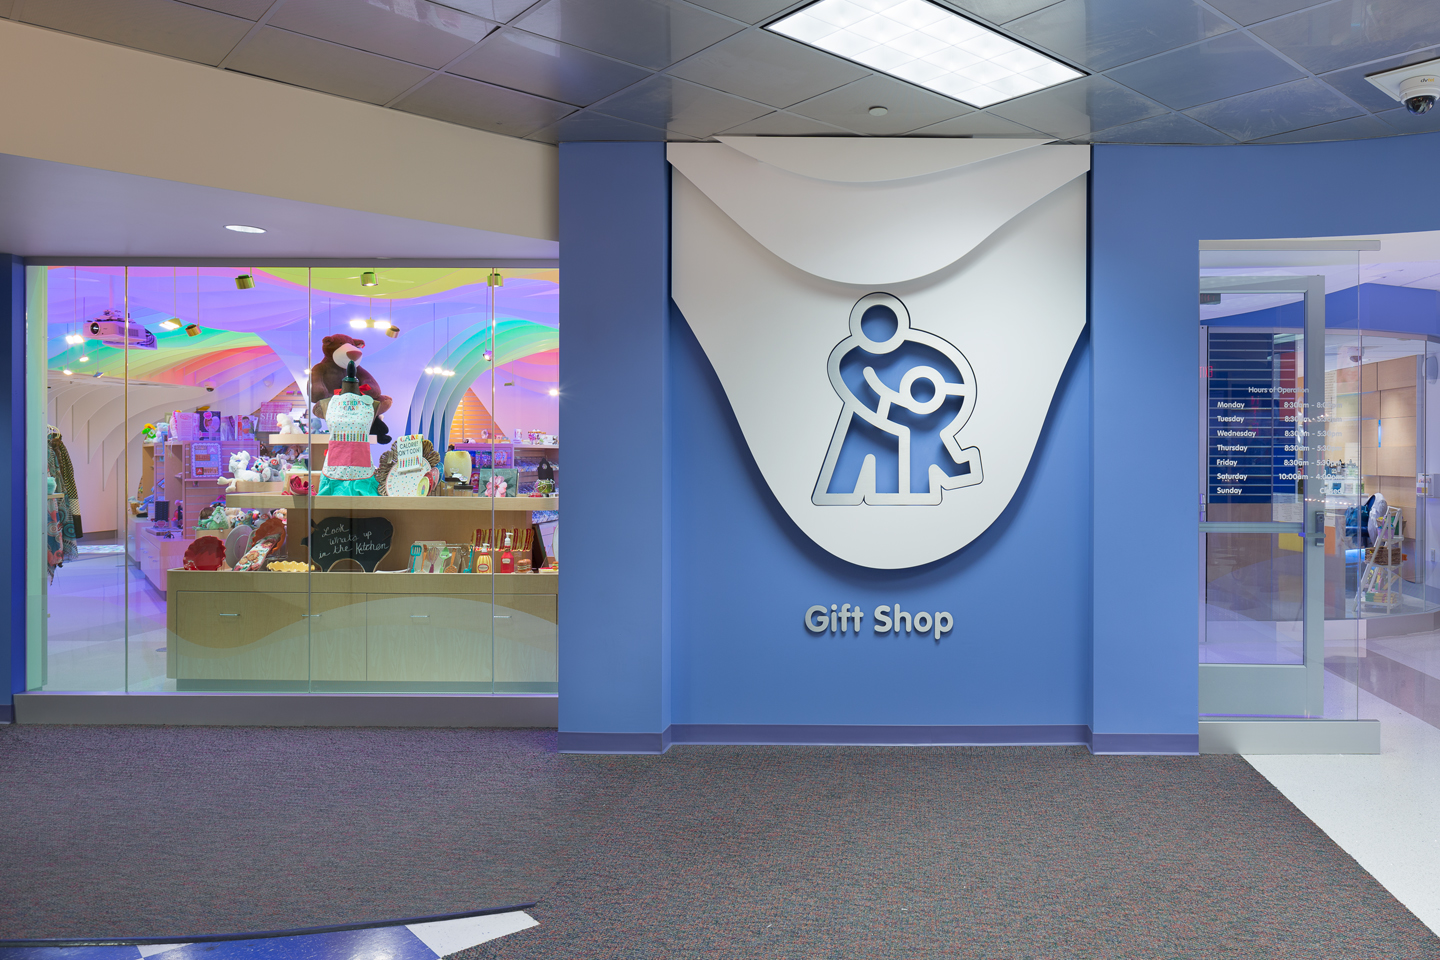 Childrens Mercy Hospital Gift Shop